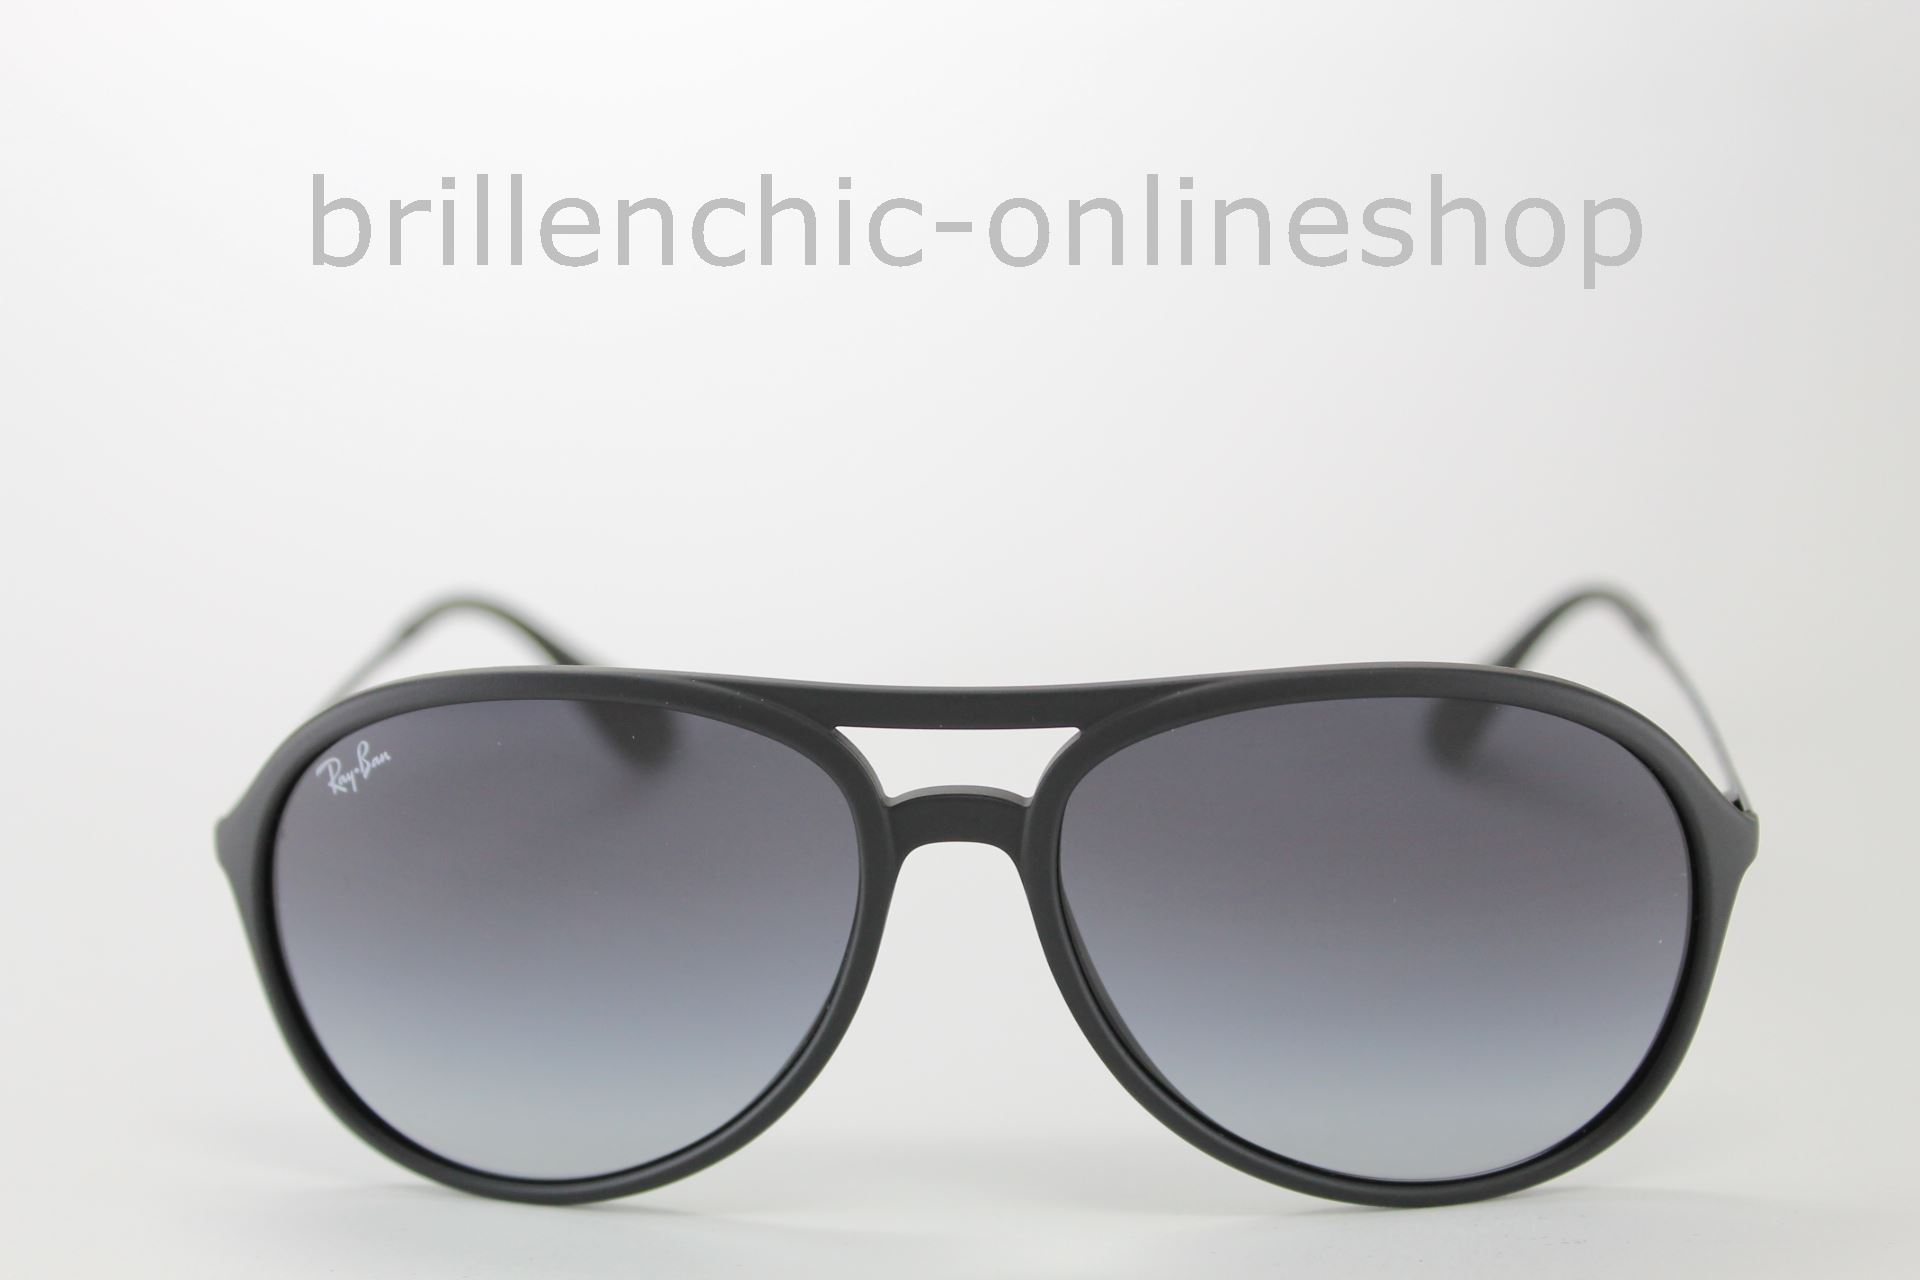 d0a4fe2c7f3 Brillenchic-onlineshop in Berlin - Ray Ban ALEX RB 4201 622 8G